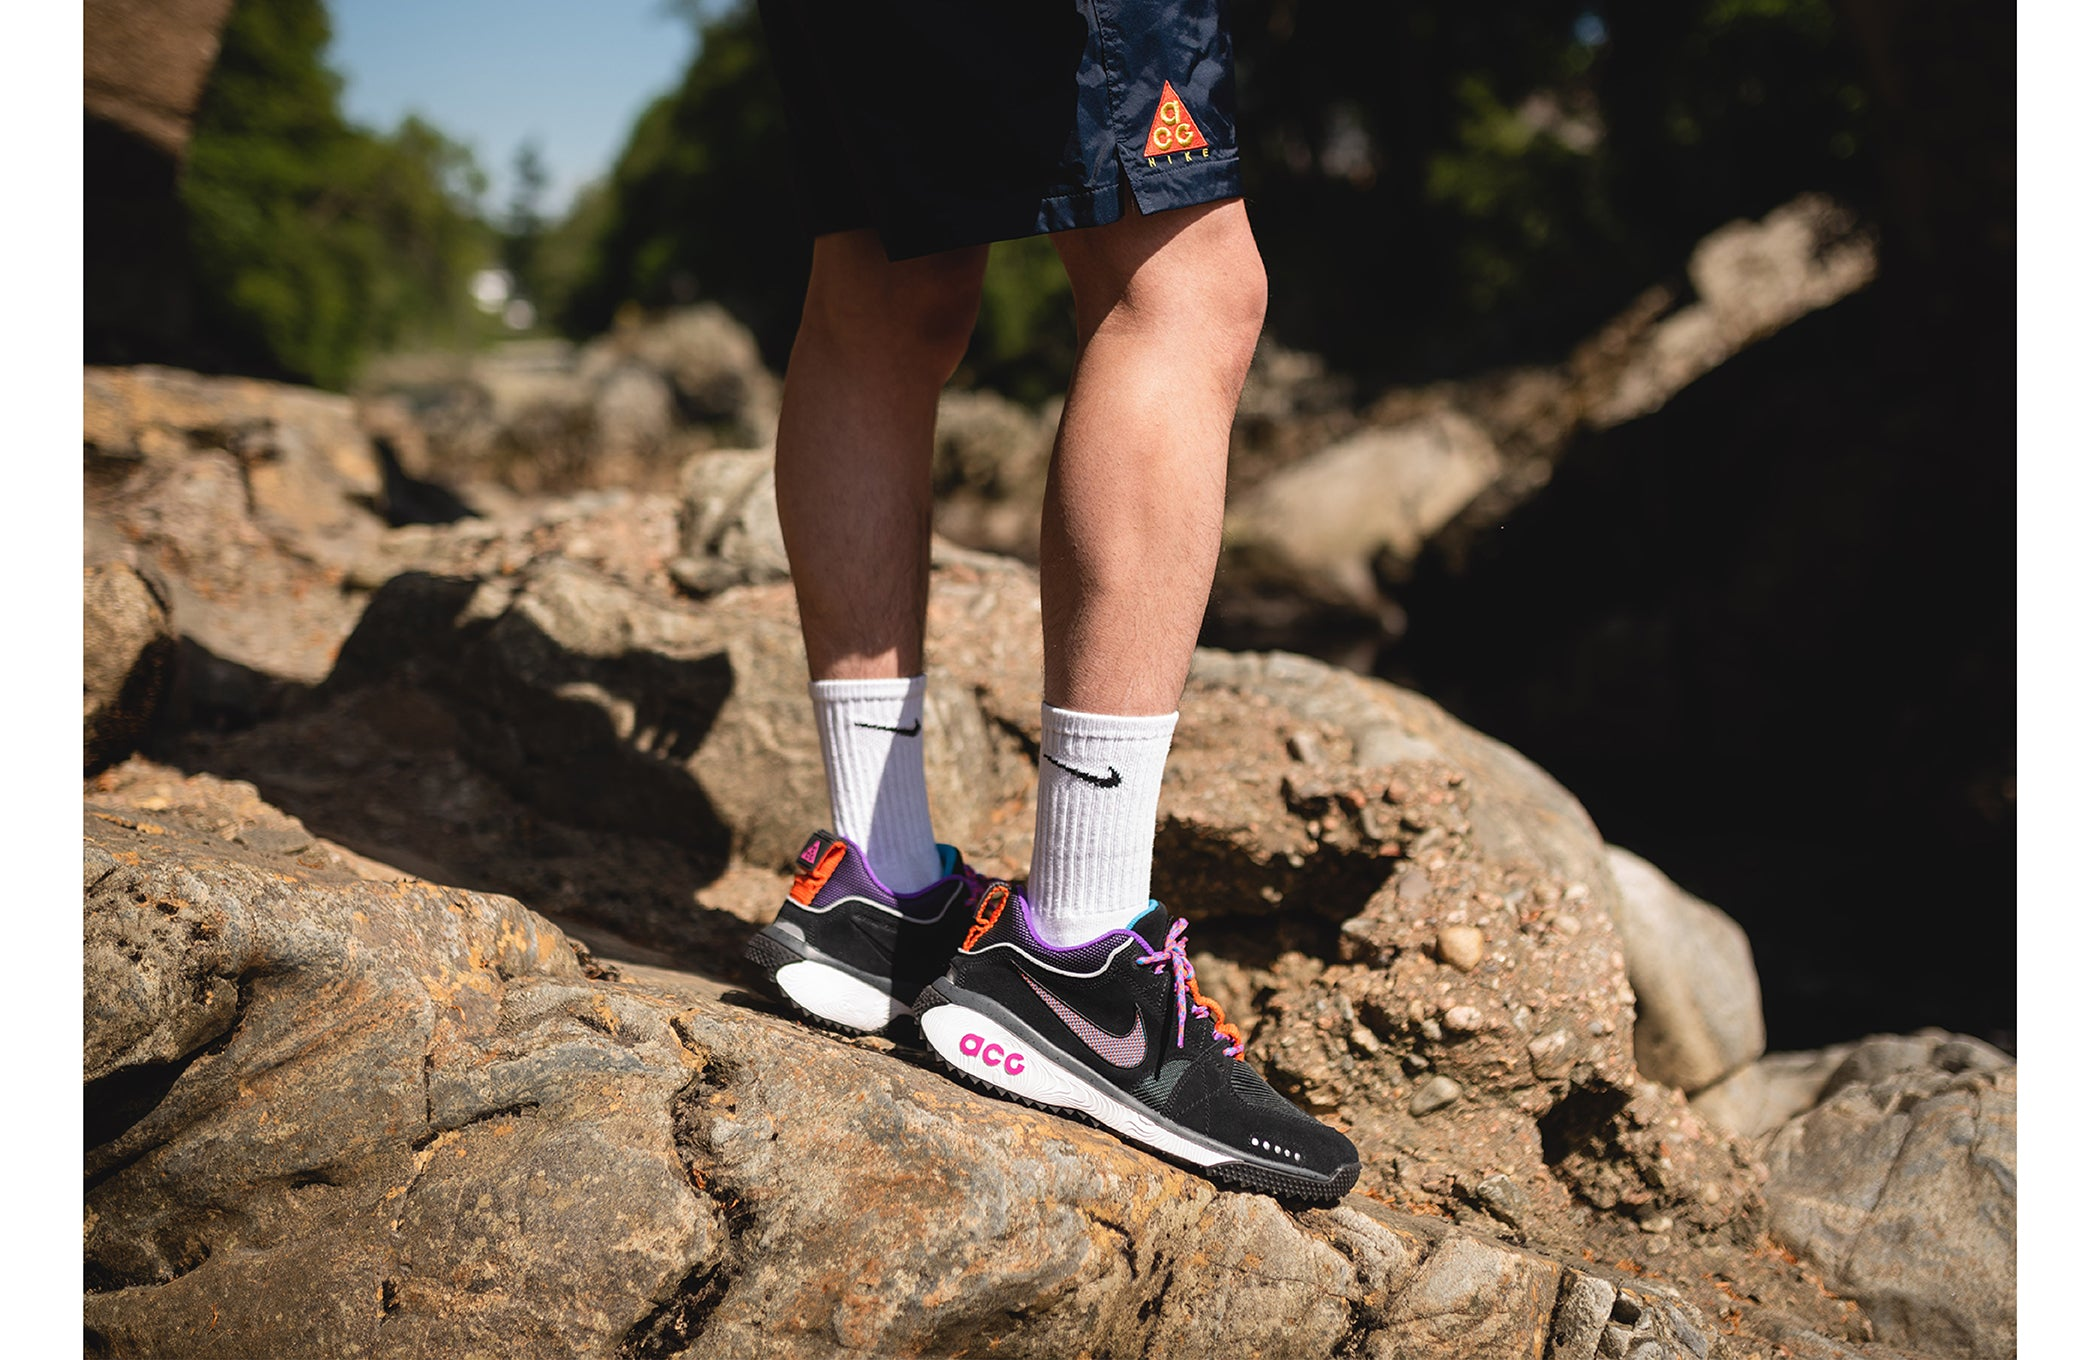 info for 72734 b9a28 The apparel portion of the collection is formed with a range of garments  all adoring the famous Nike All Conditions Gear logo. Like the footwear  the ACG ...